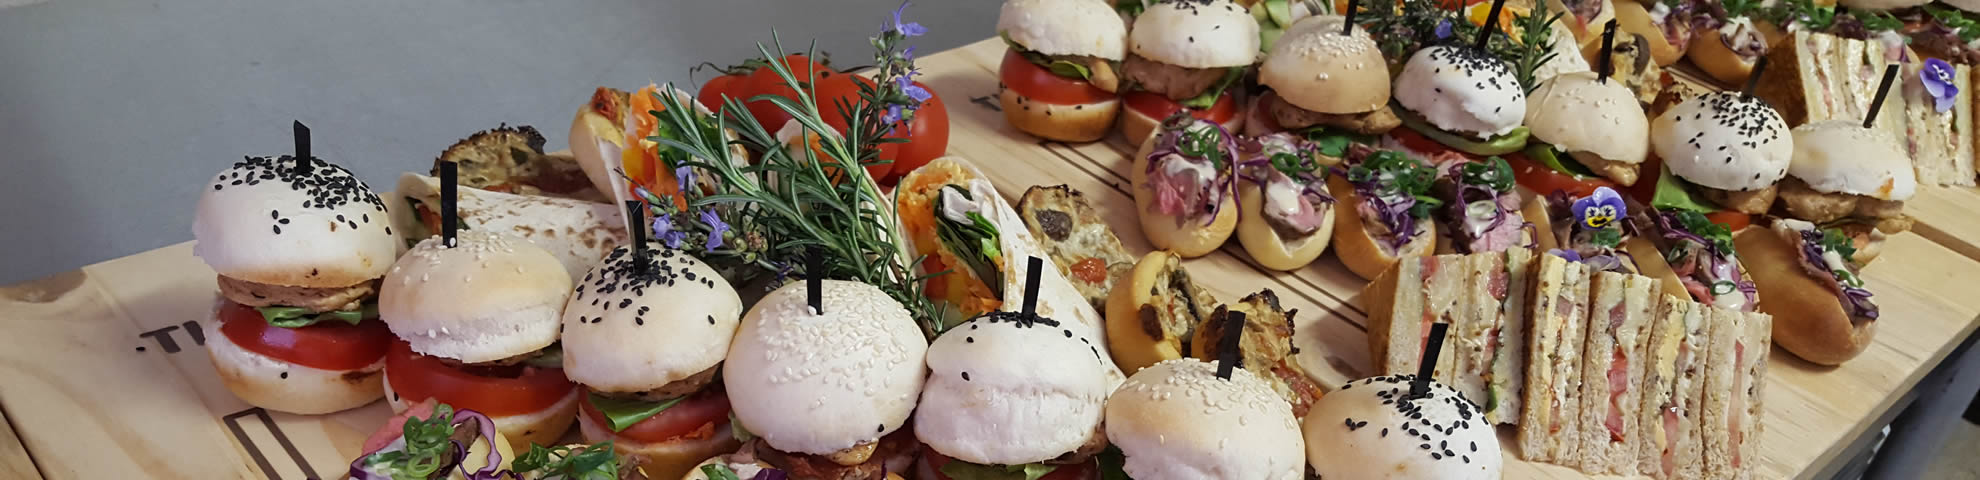 We do catering for private parties, weddings and events in Pretoria, Johannesburg, Gauteng